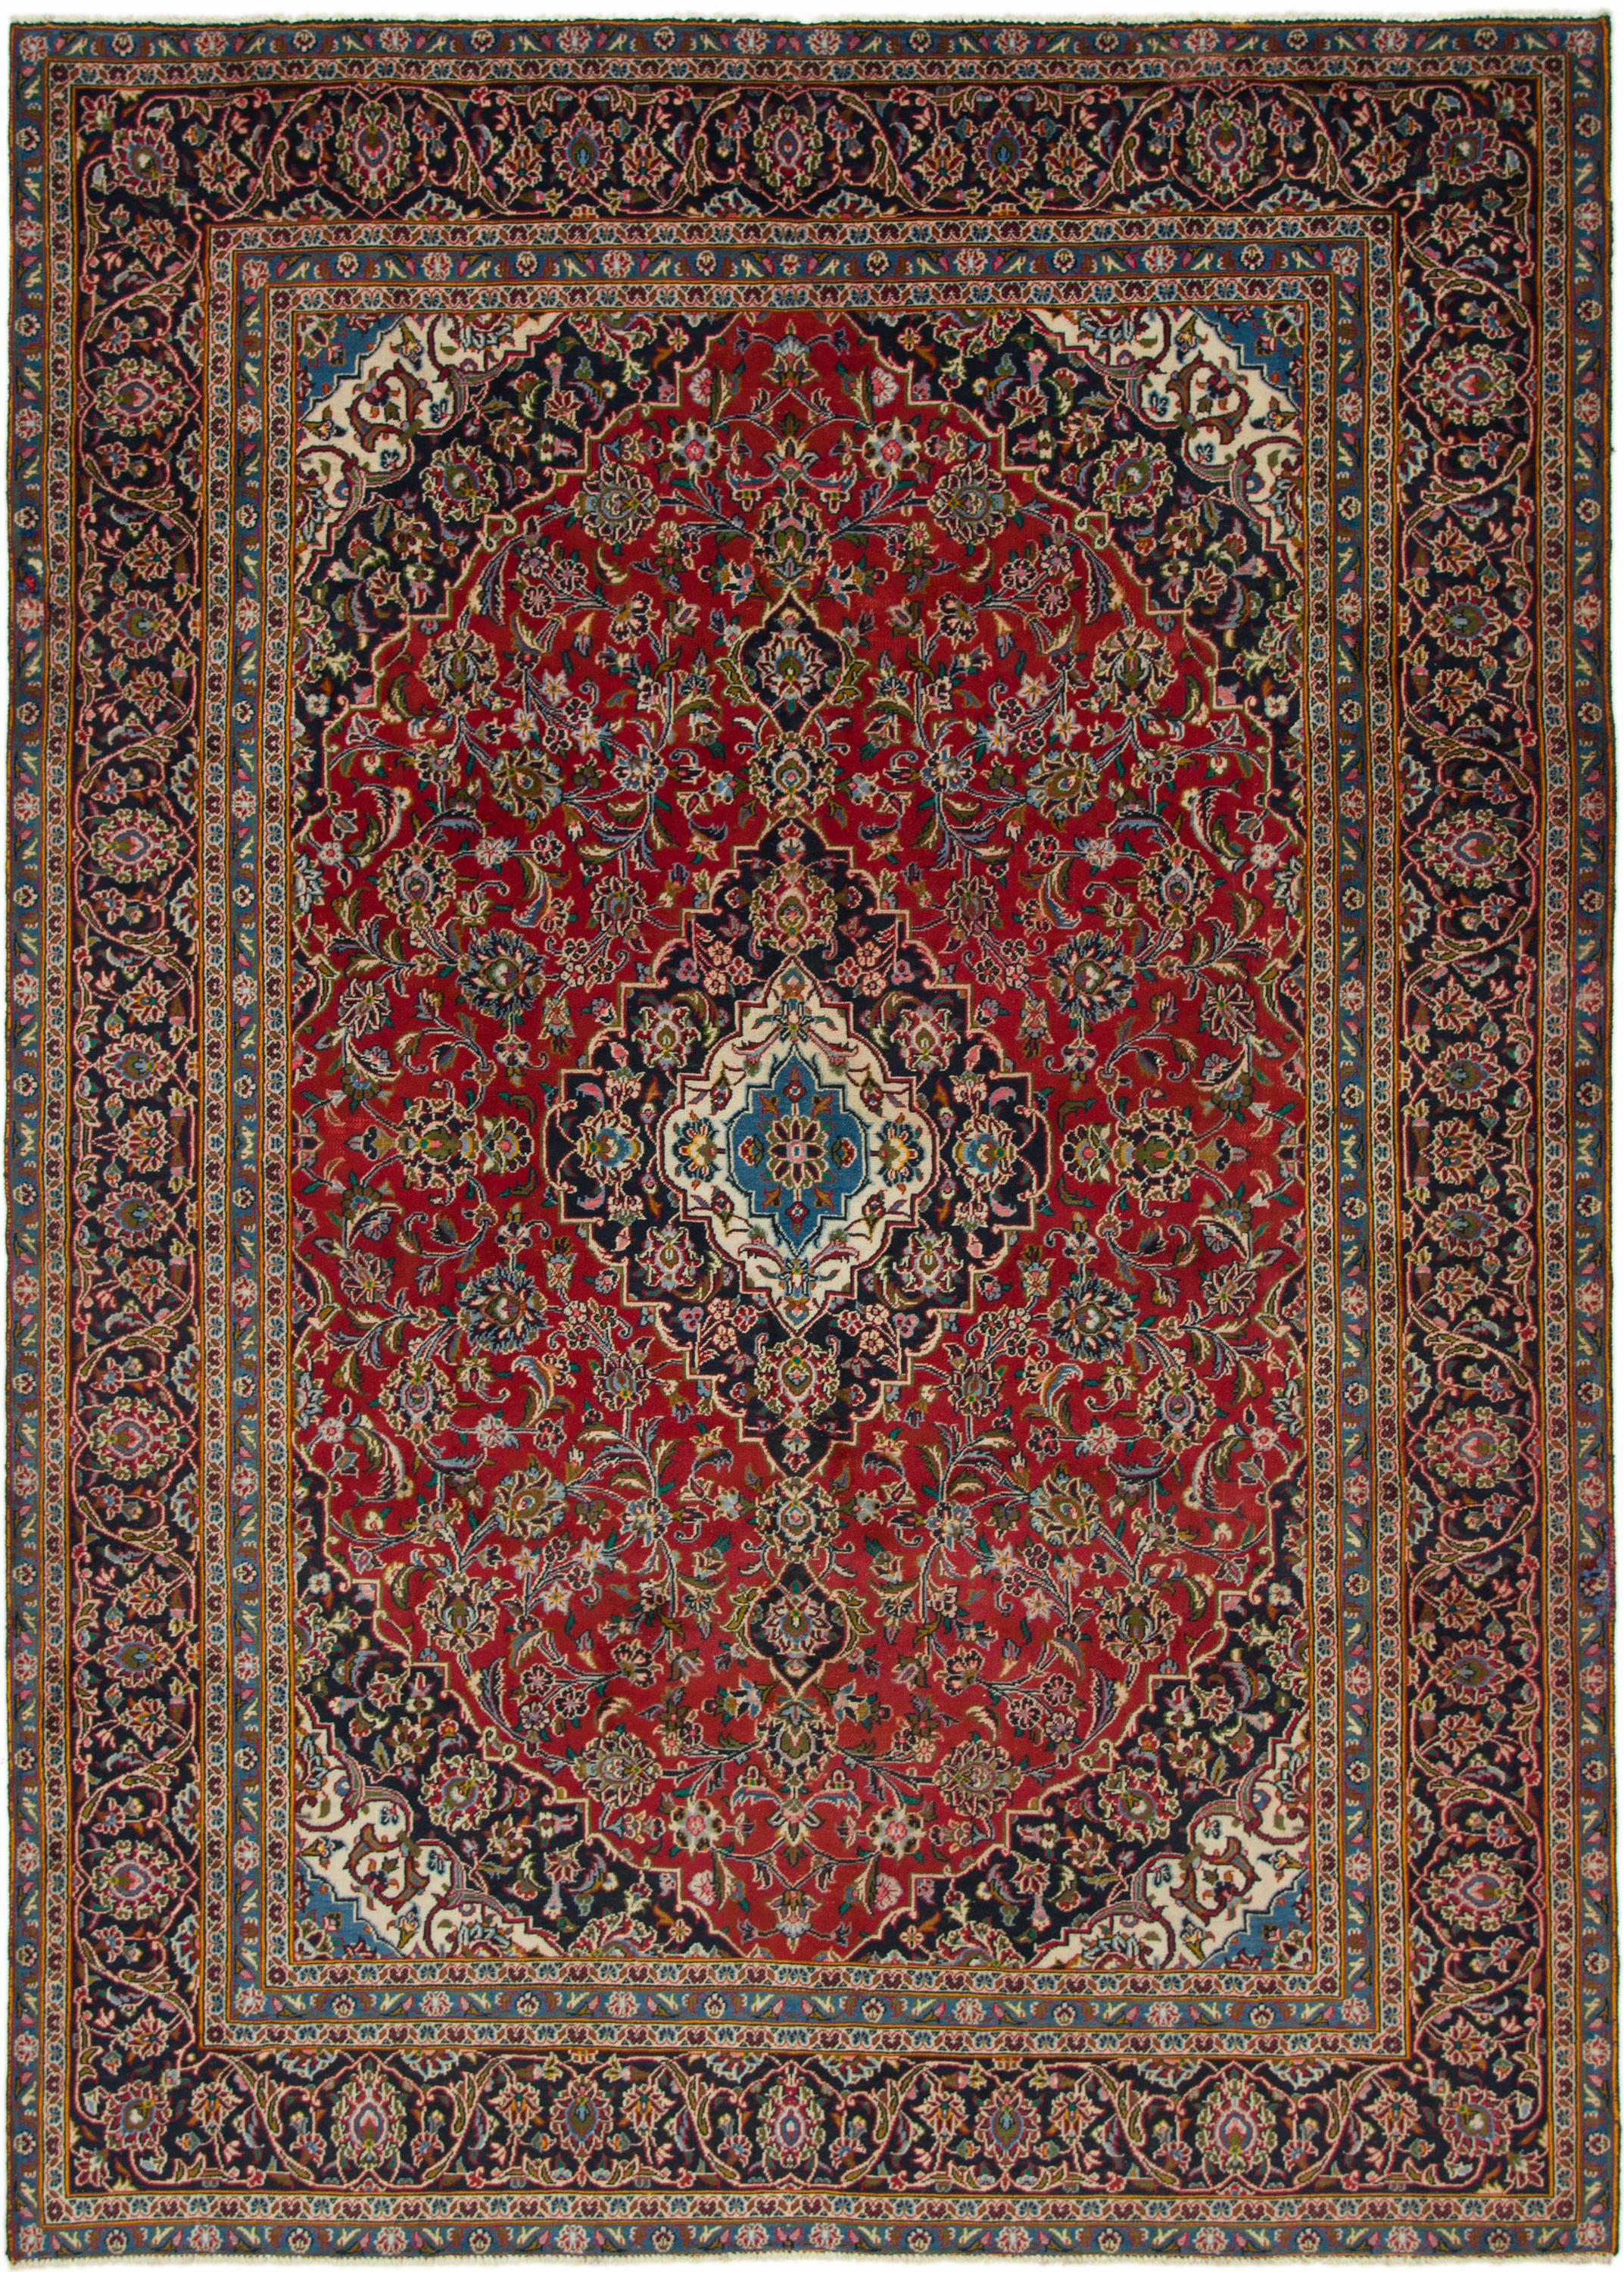 Red 7 6 X 10 7 Kashan Persian Rug Handknotted Com